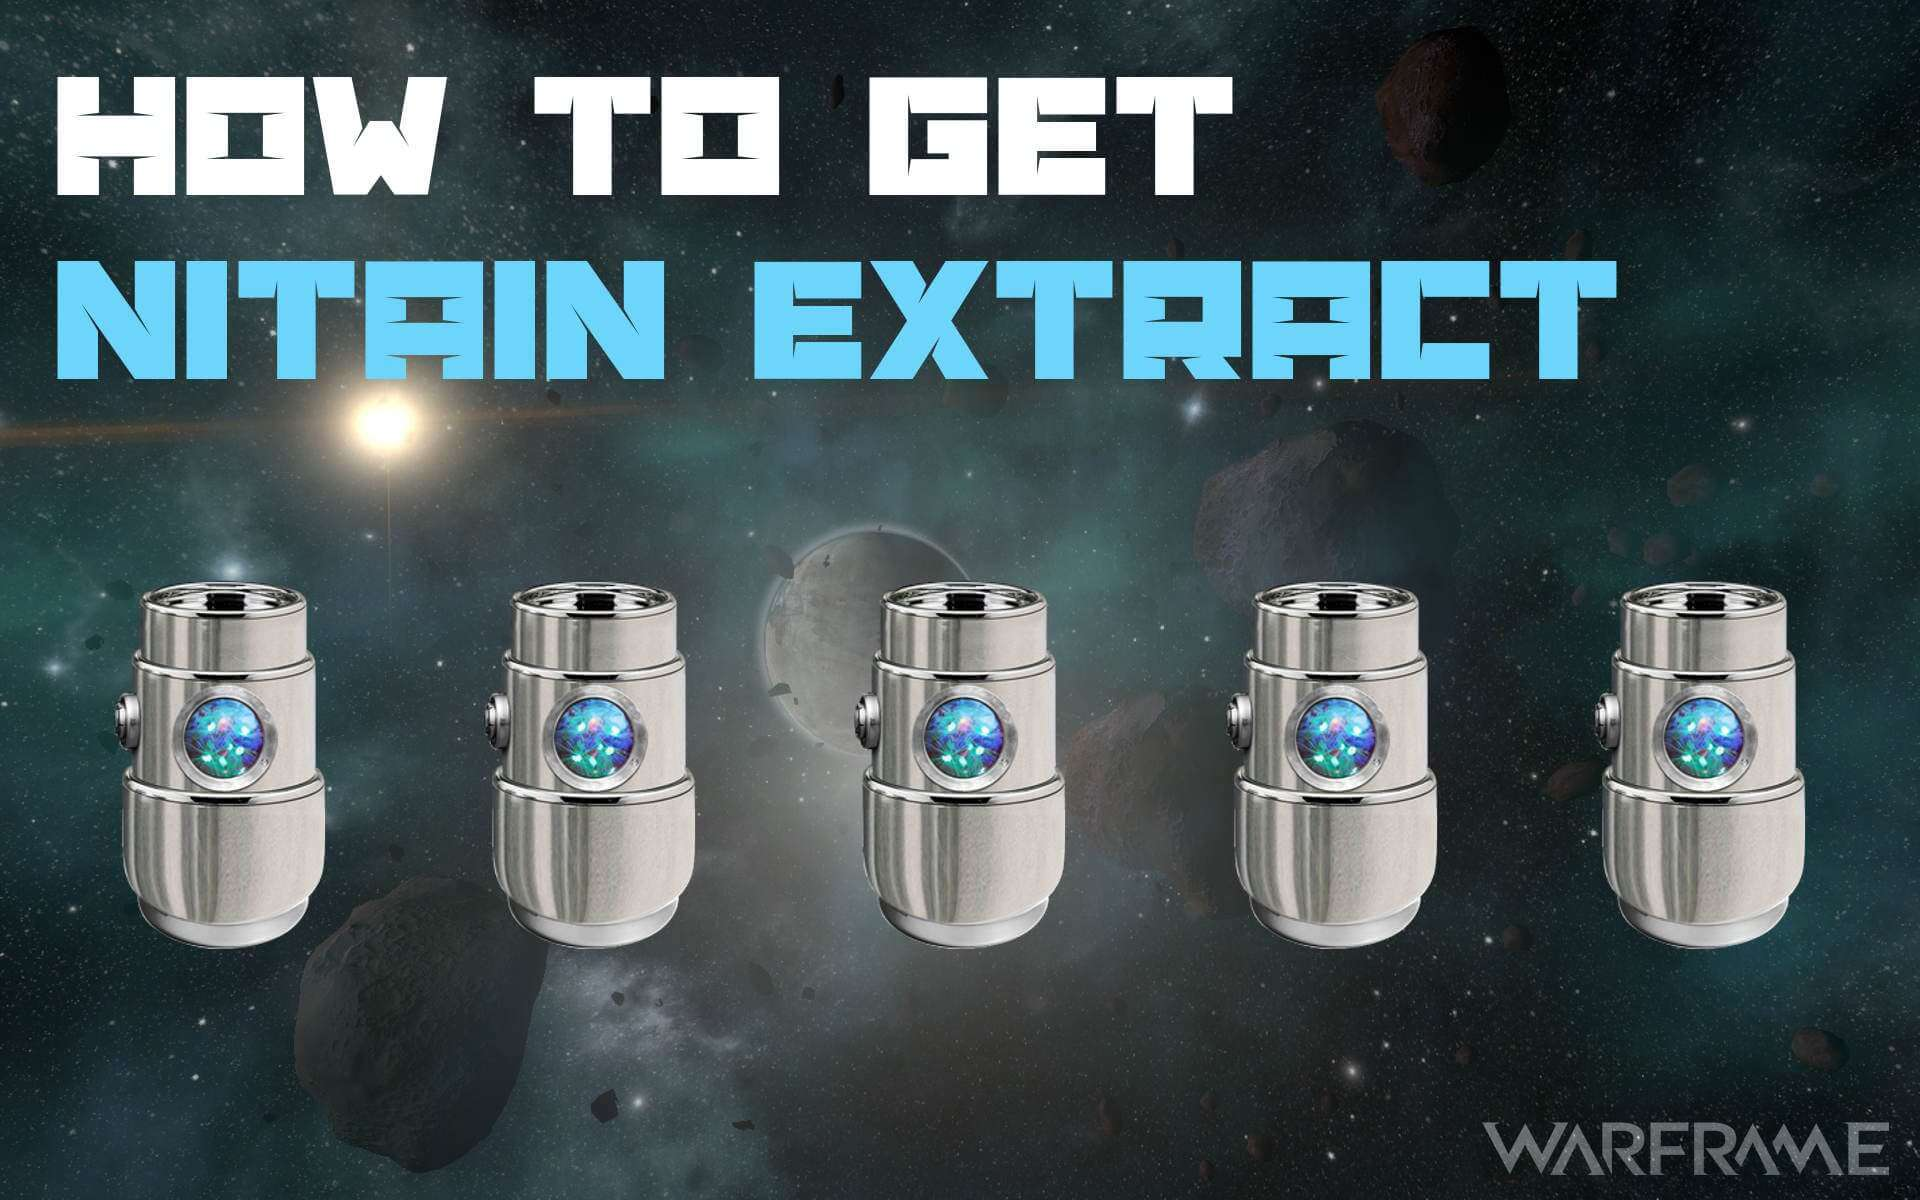 Warframe Nitain Extract